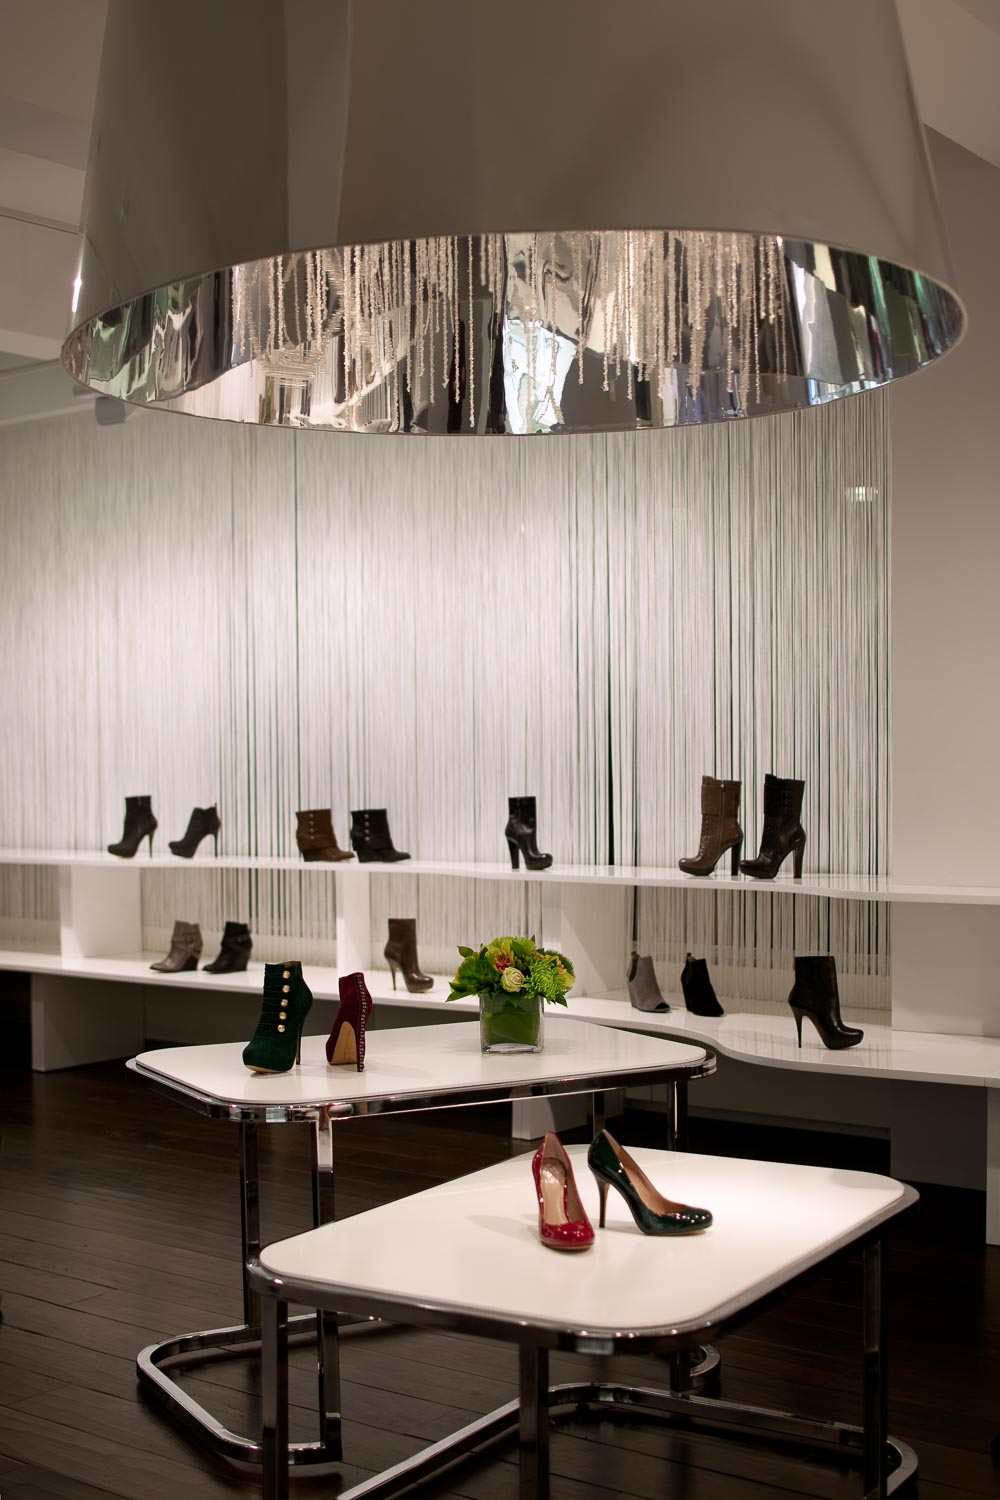 Vince Camuto Showroom Design 03.jpg